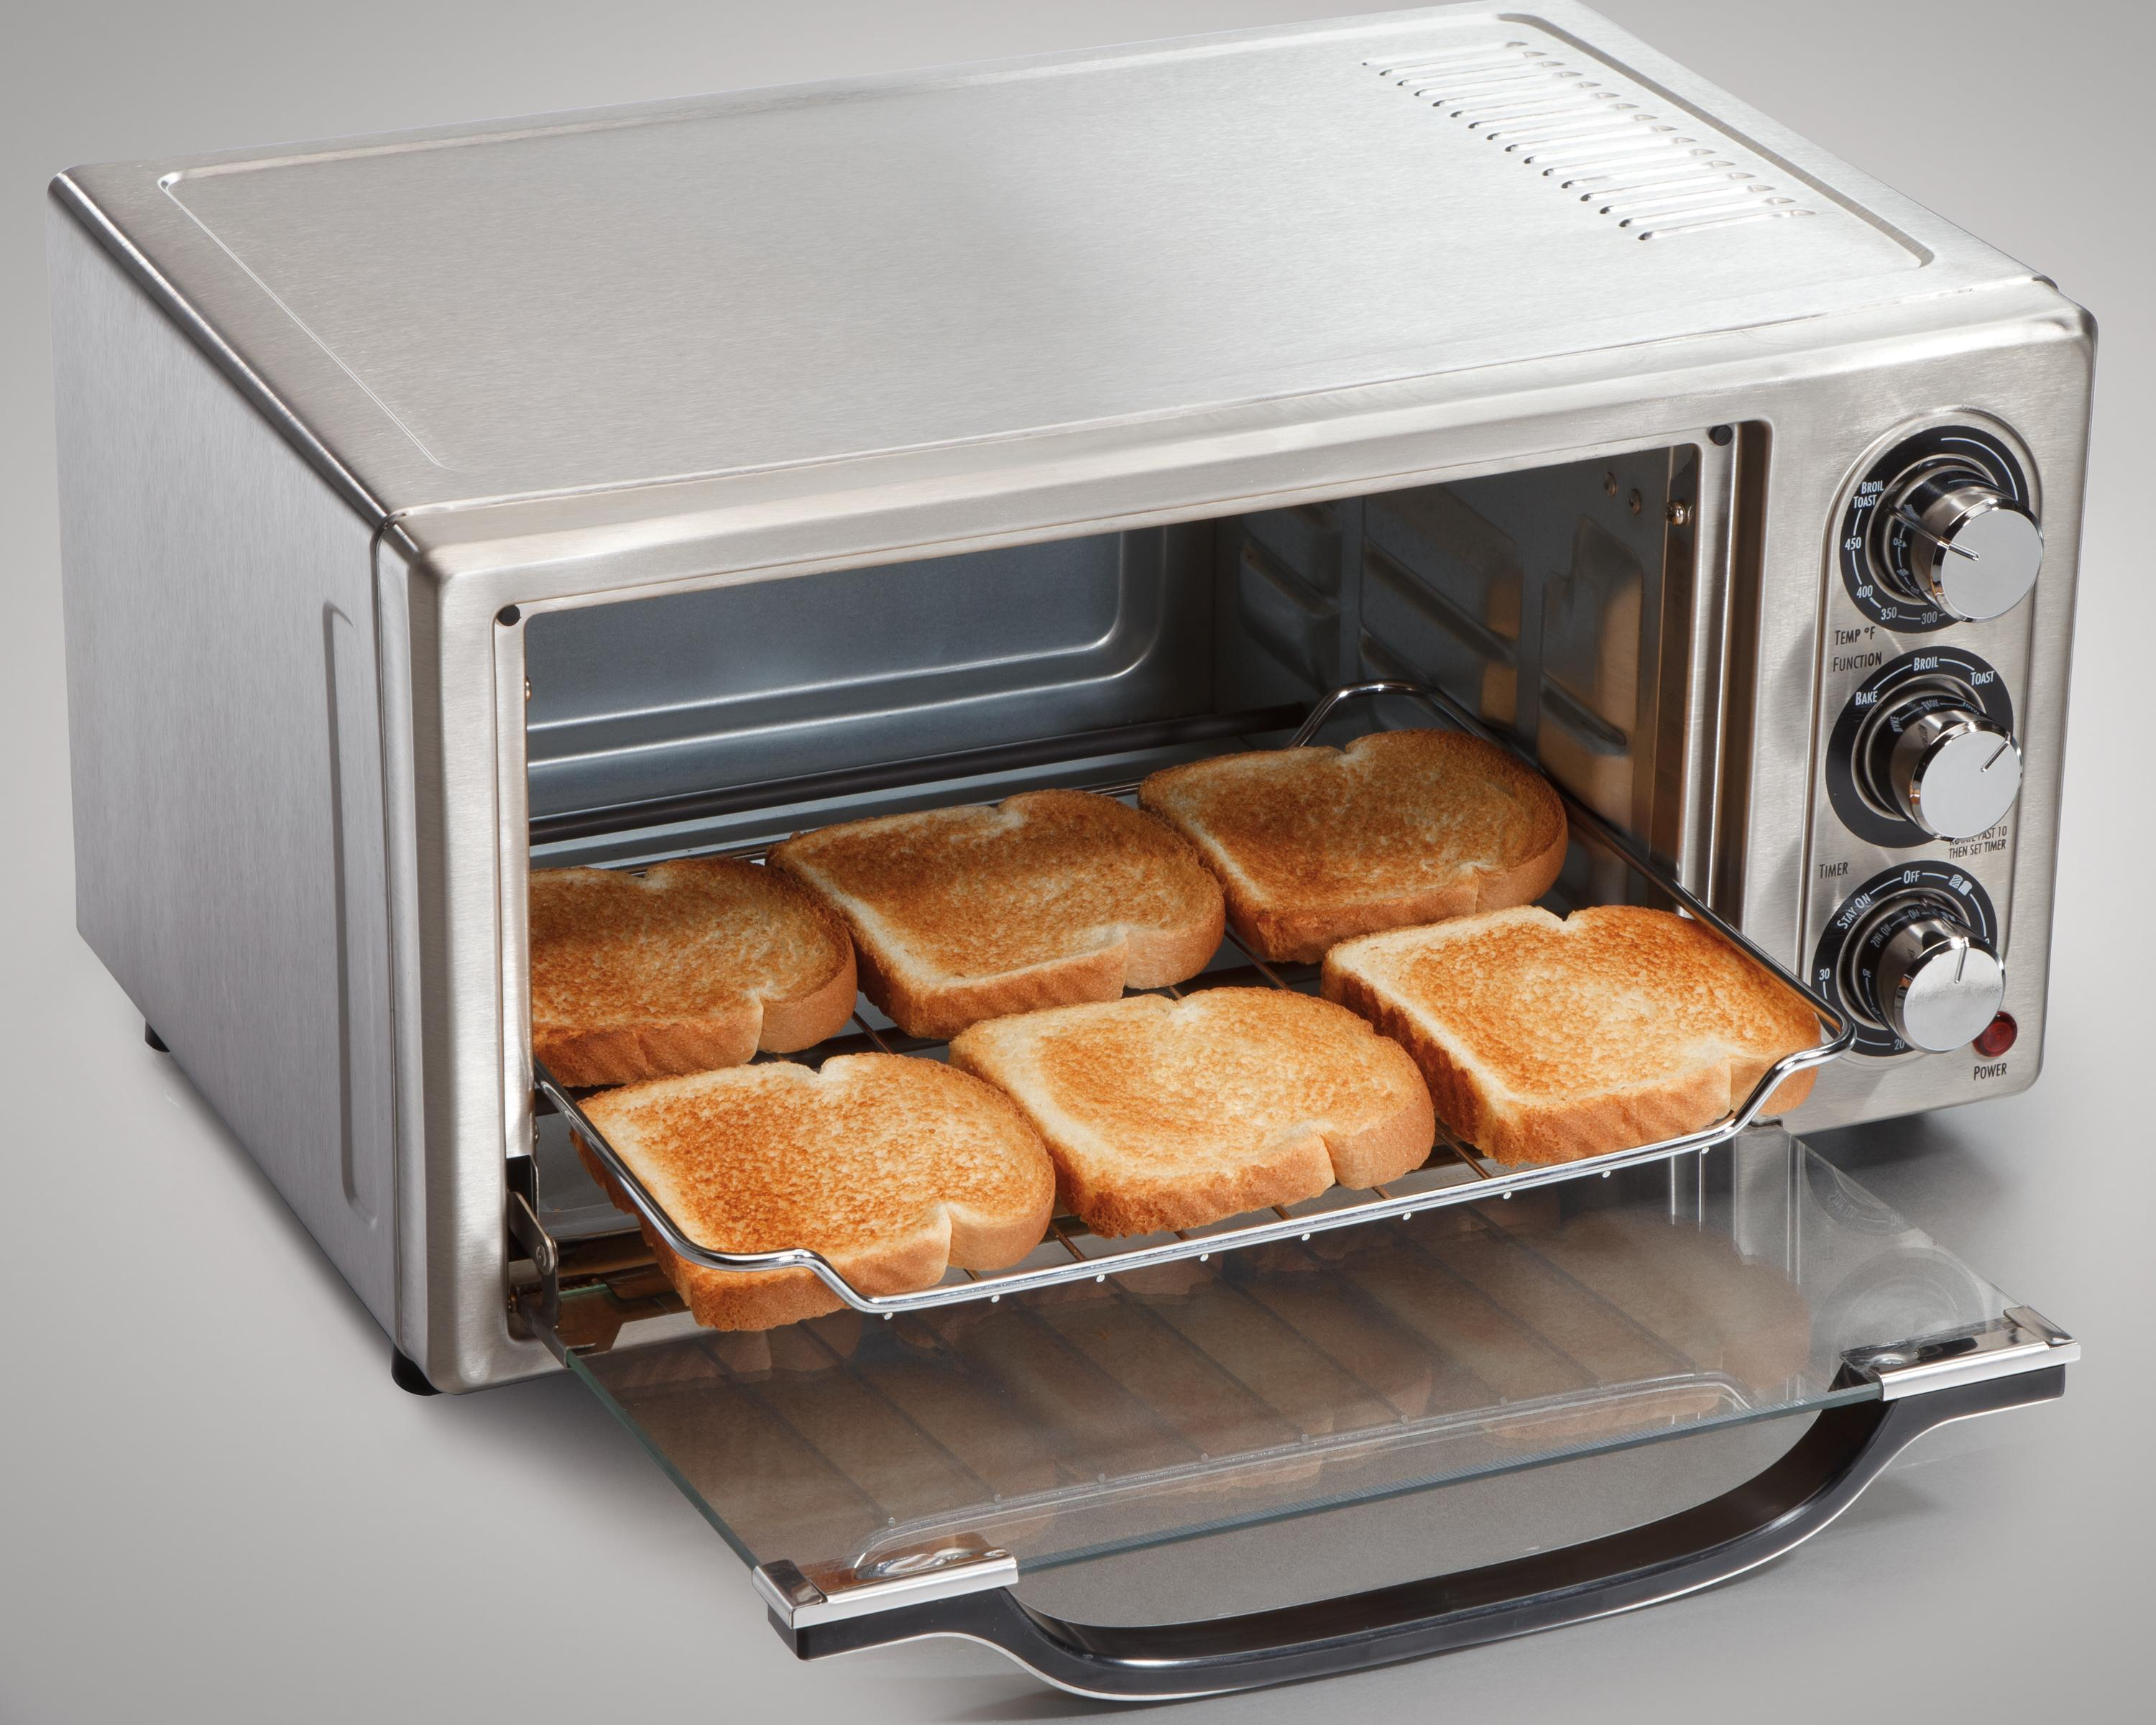 convection files toaster oven calphalon manual s download free user